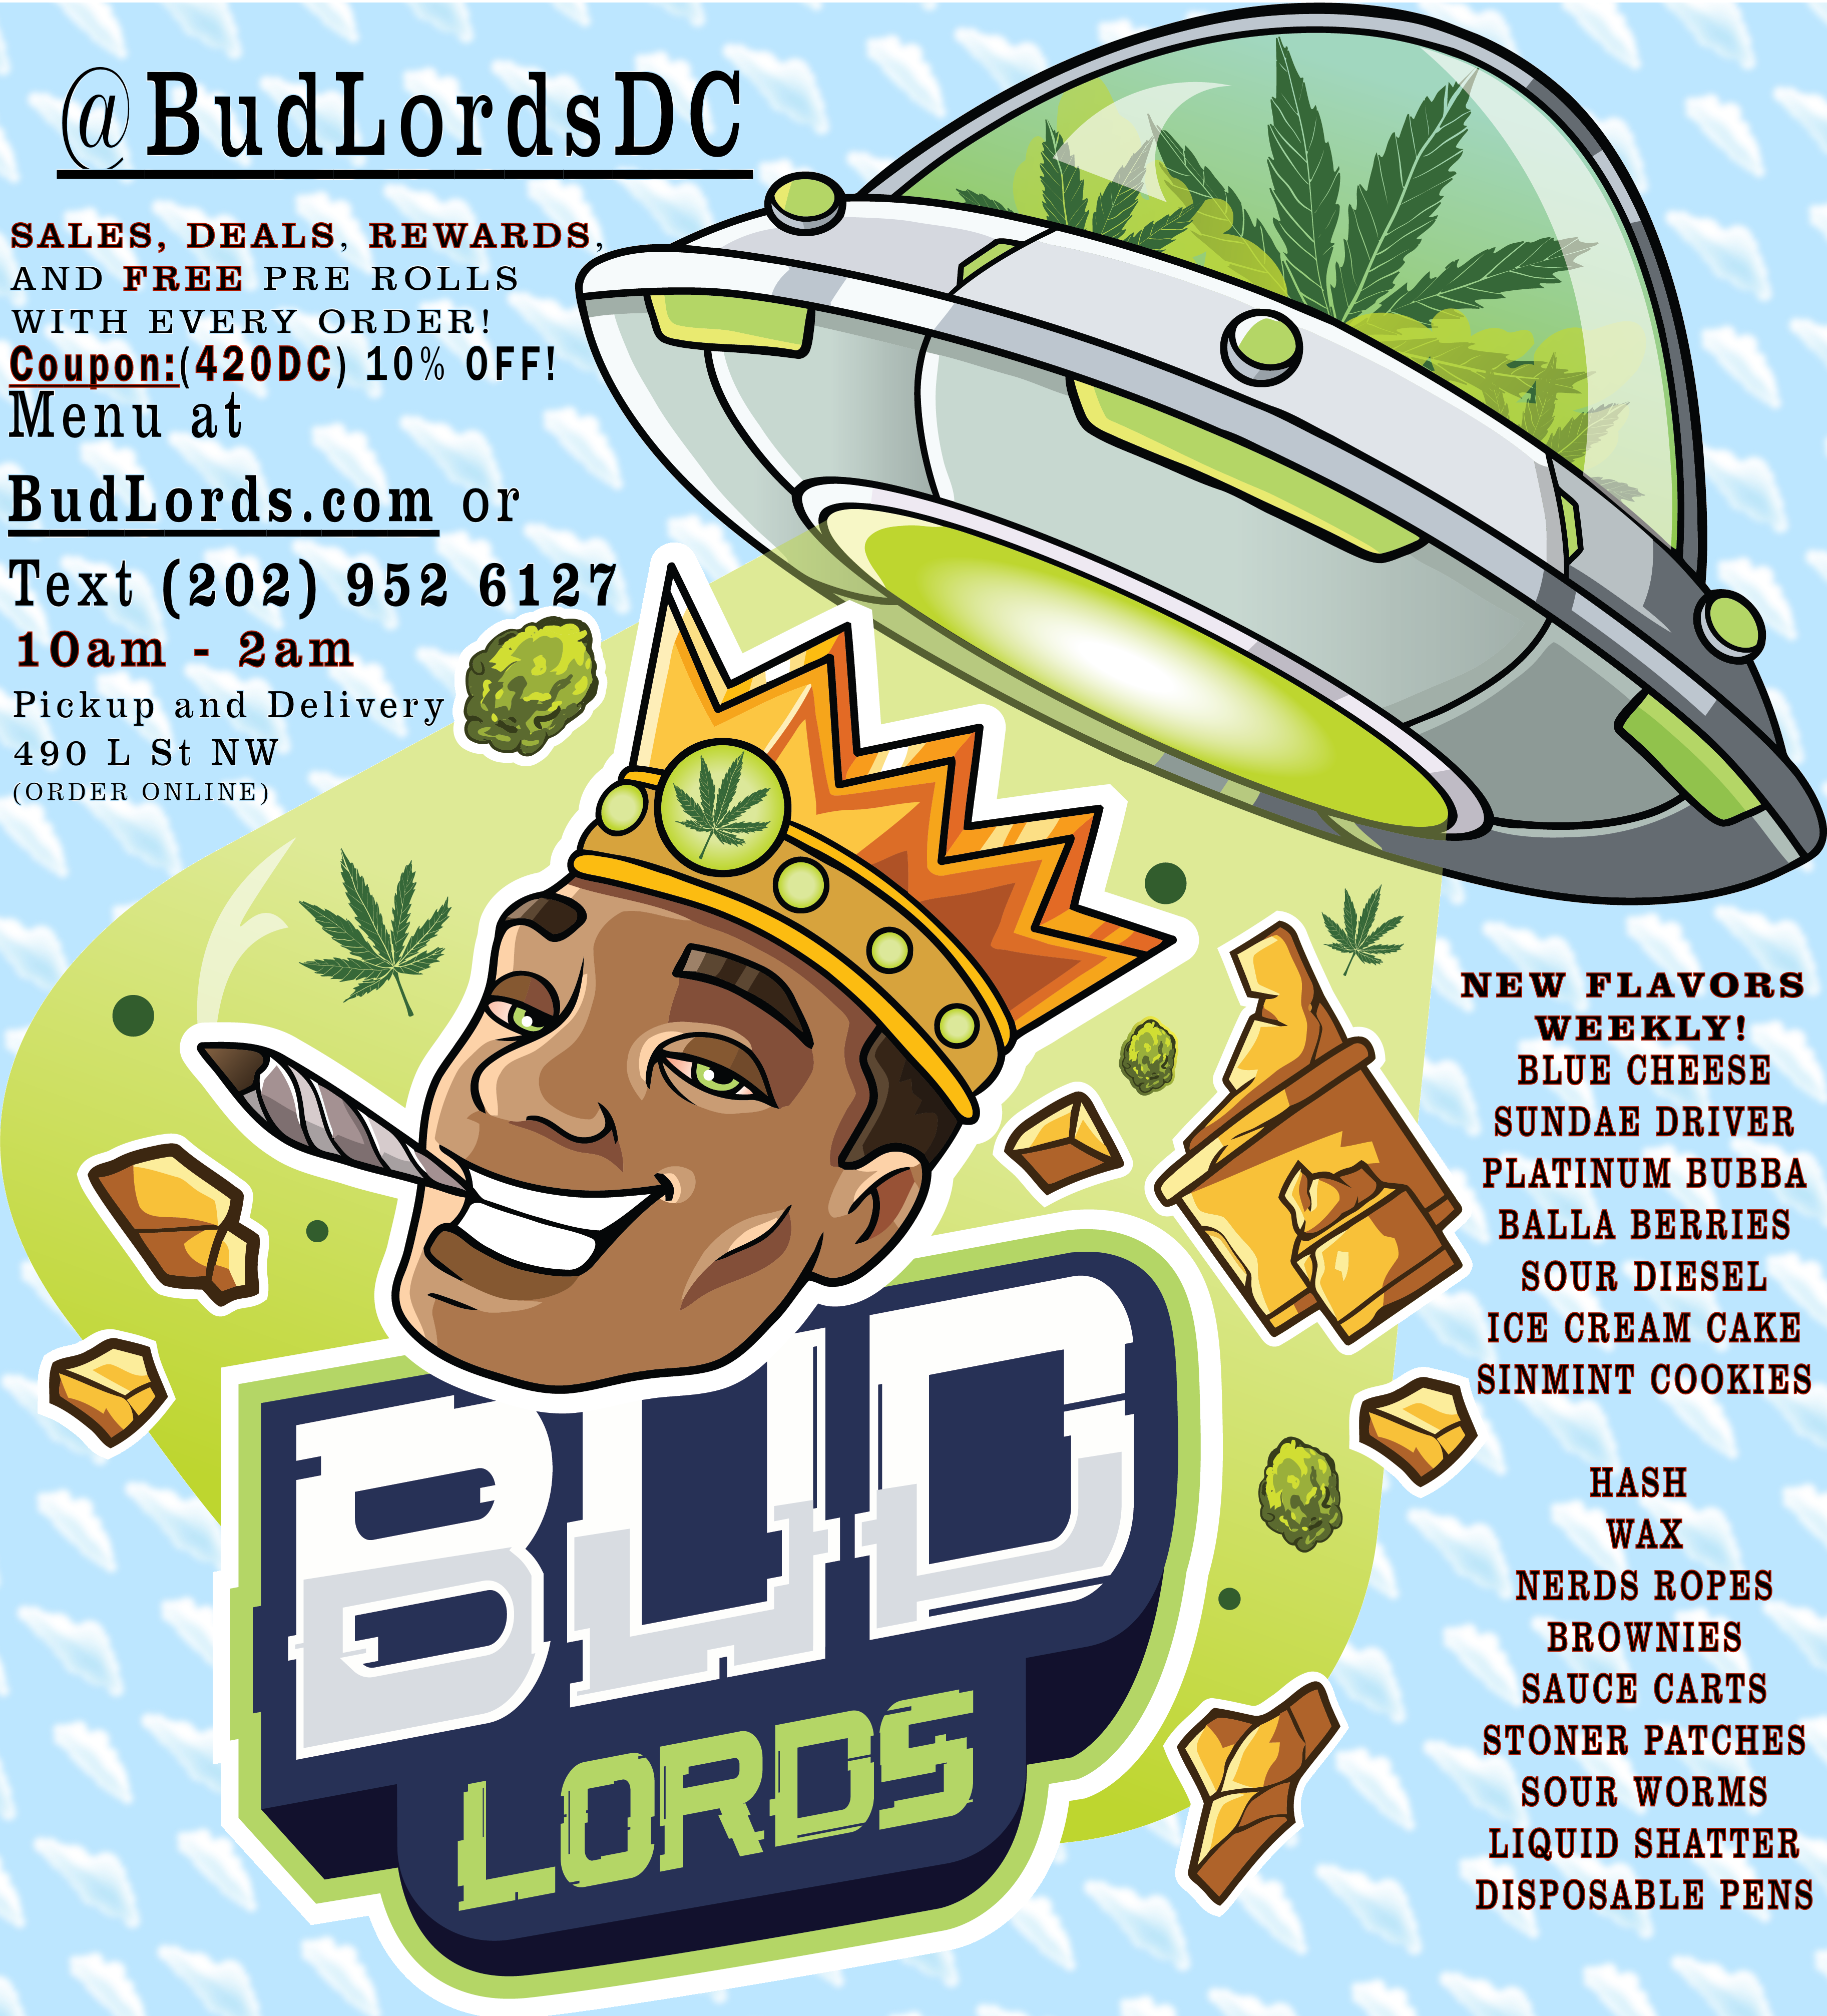 Bud Lords DC